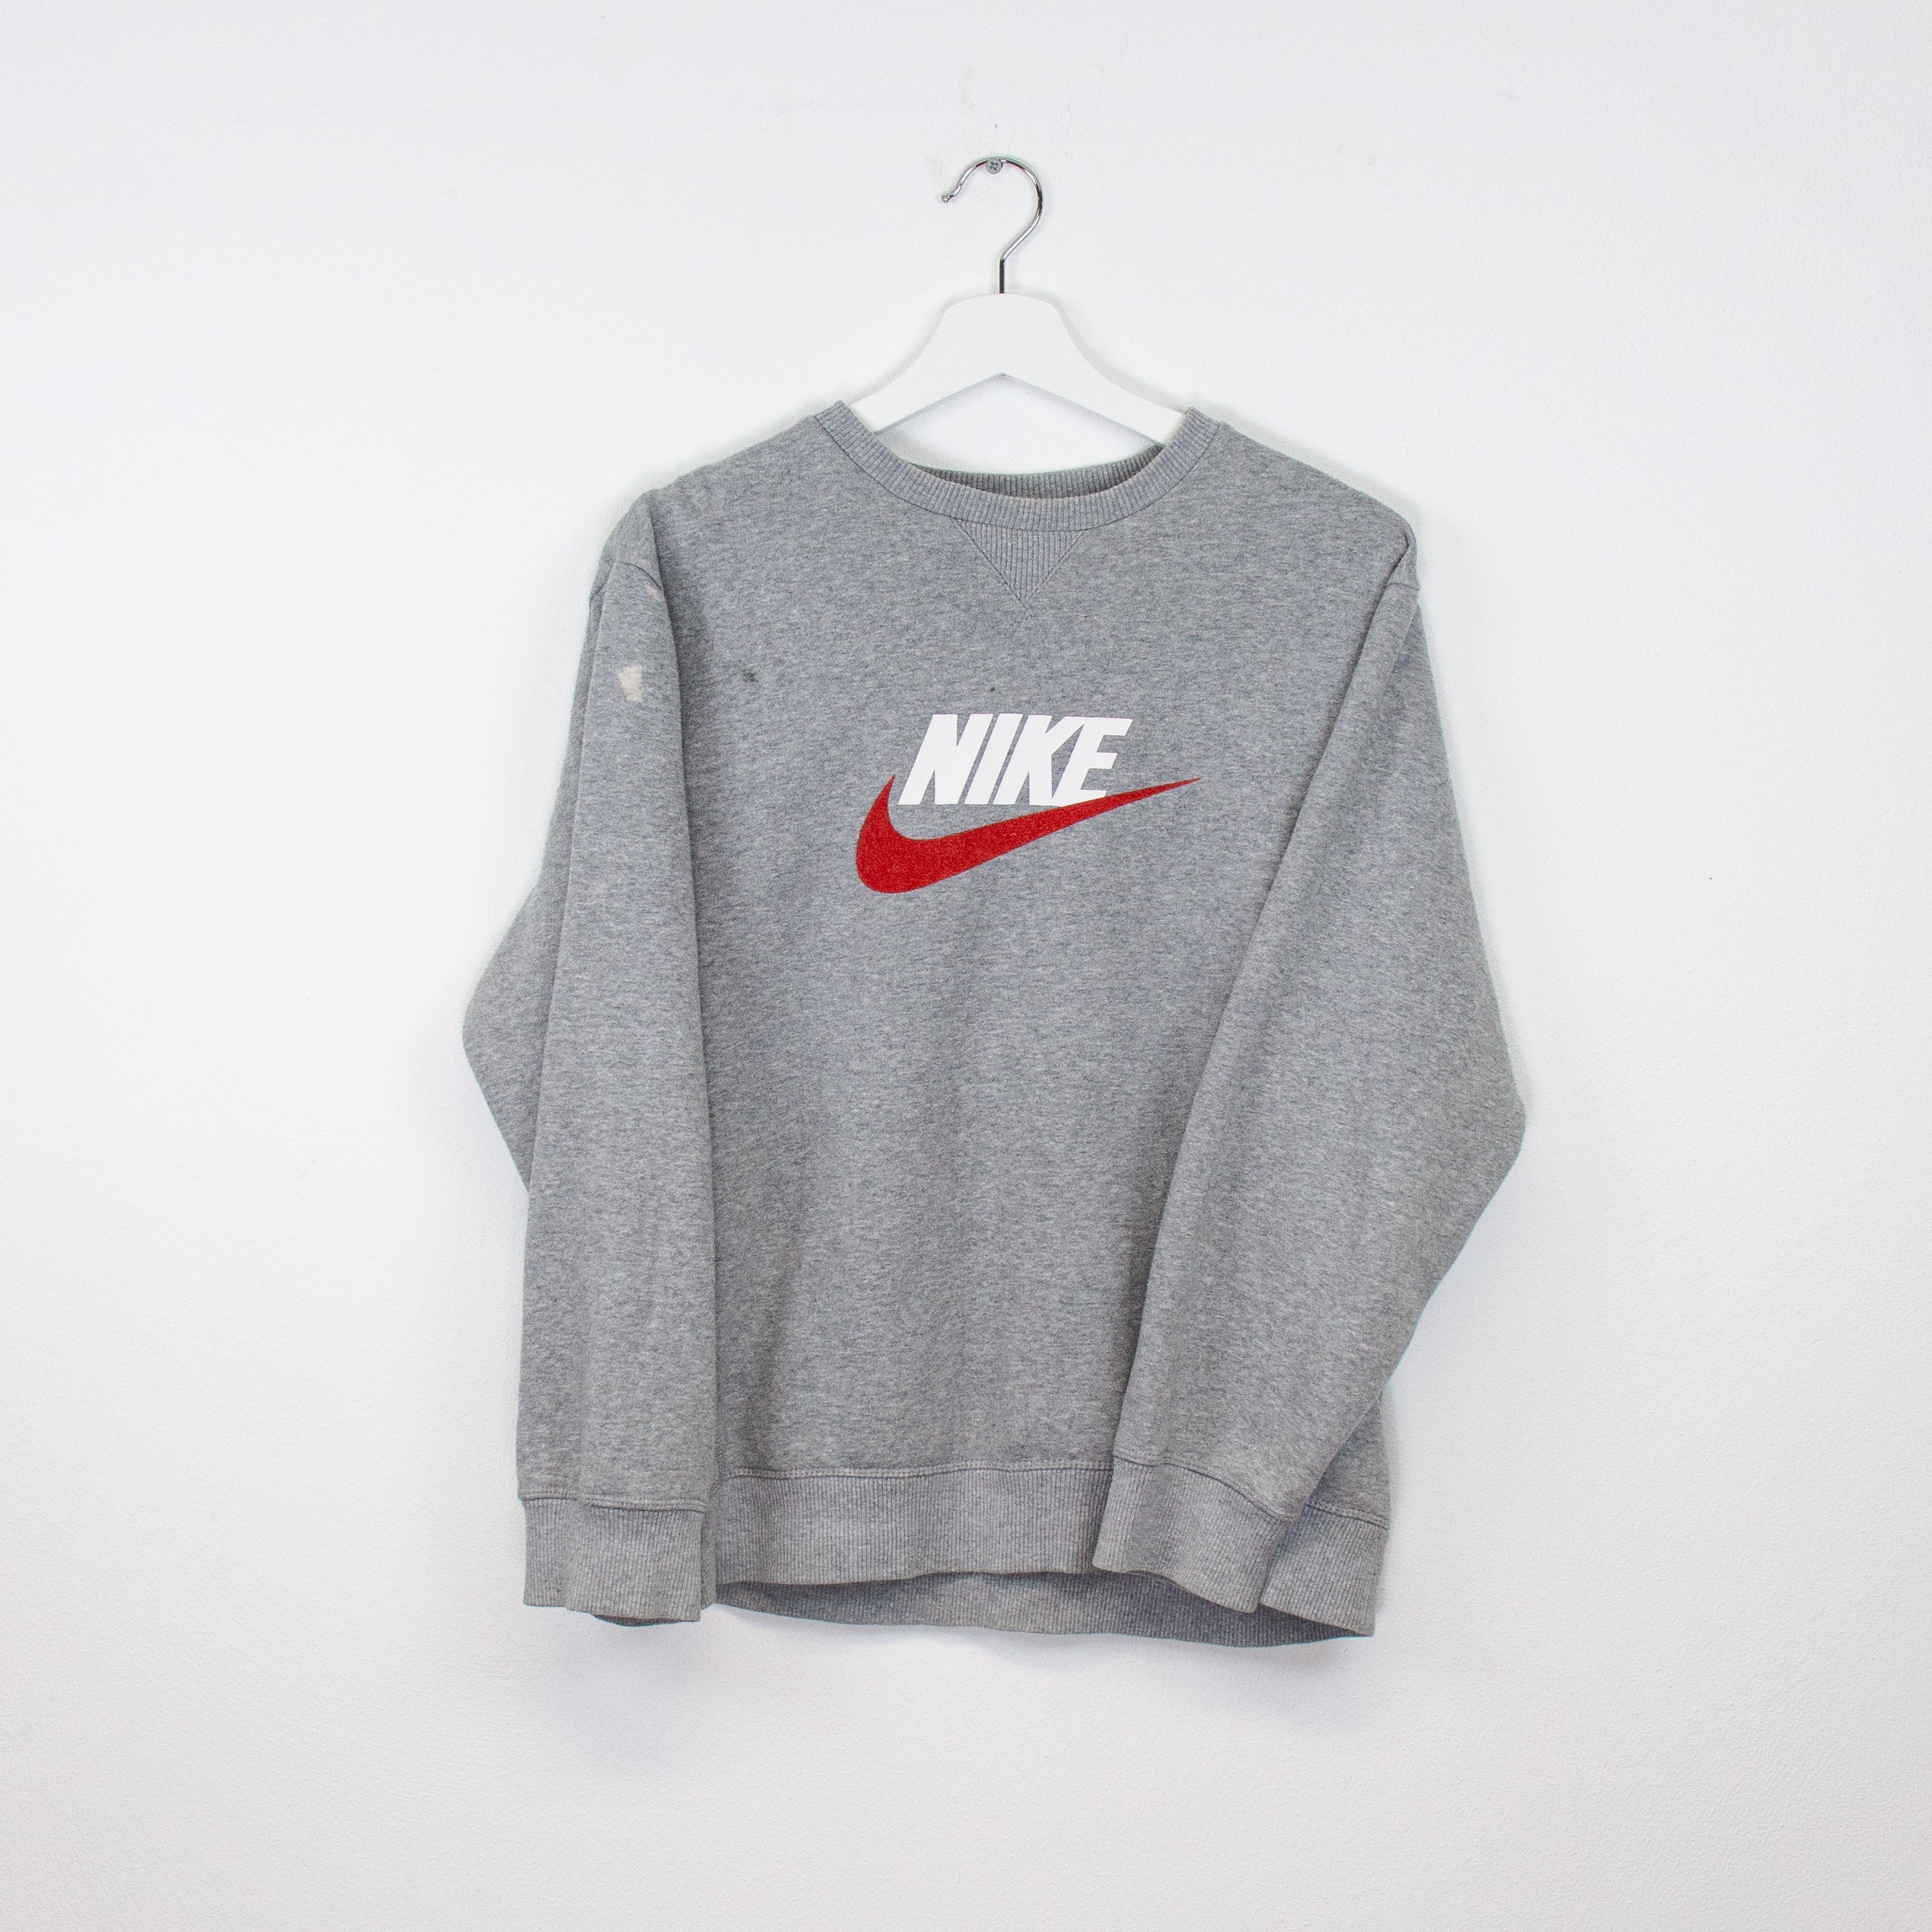 Nike Sweatshirt - XX-Small